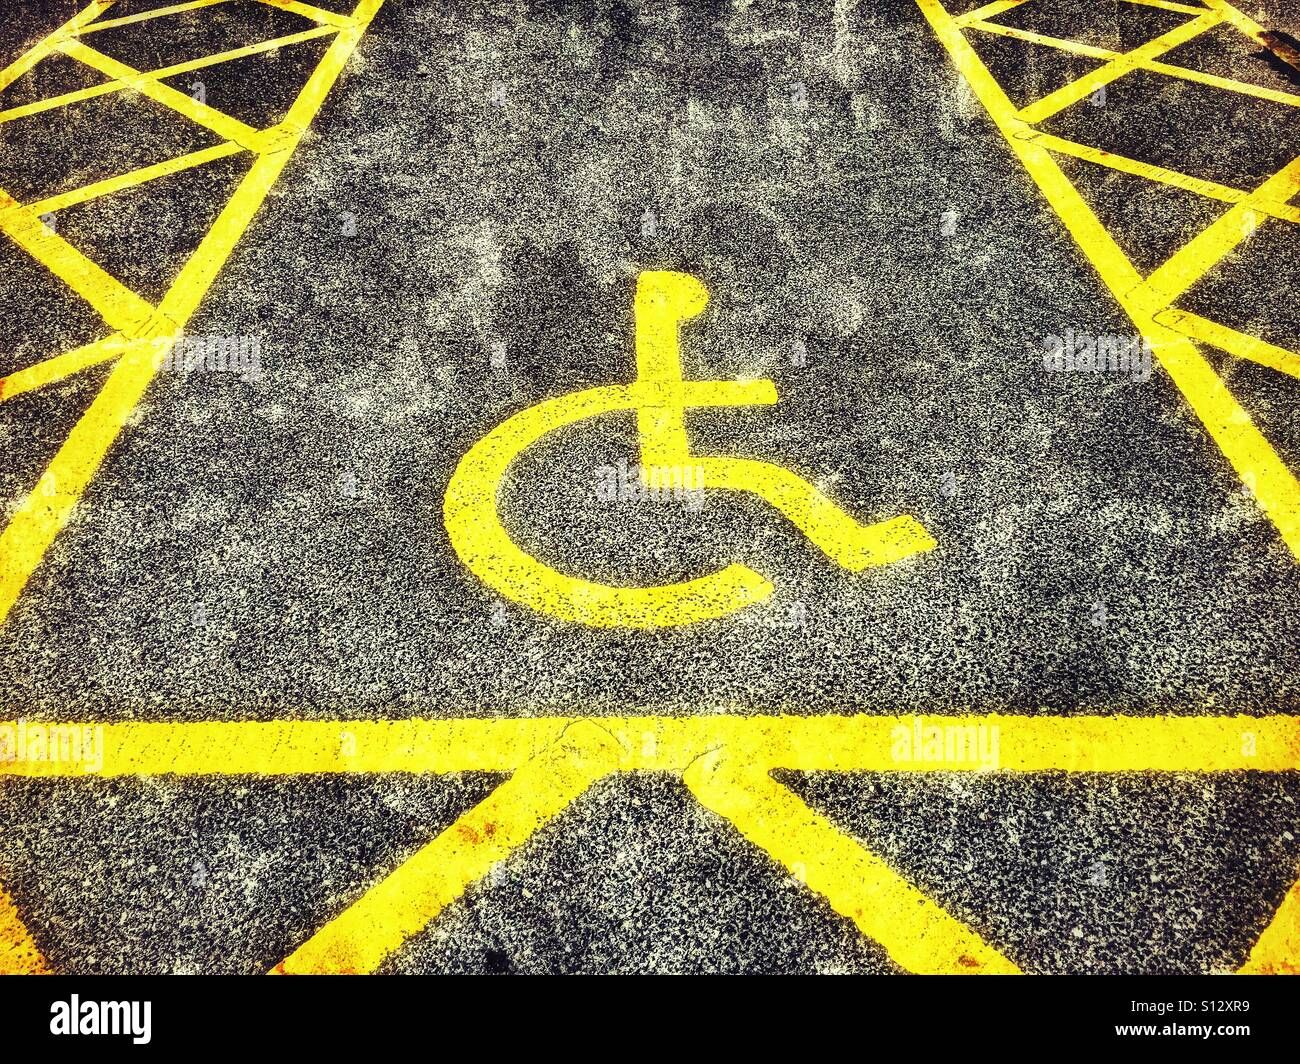 A disabled parking space yellow lines and the symbol of a person a disabled parking space yellow lines and the symbol of a person using a wheelchair biocorpaavc